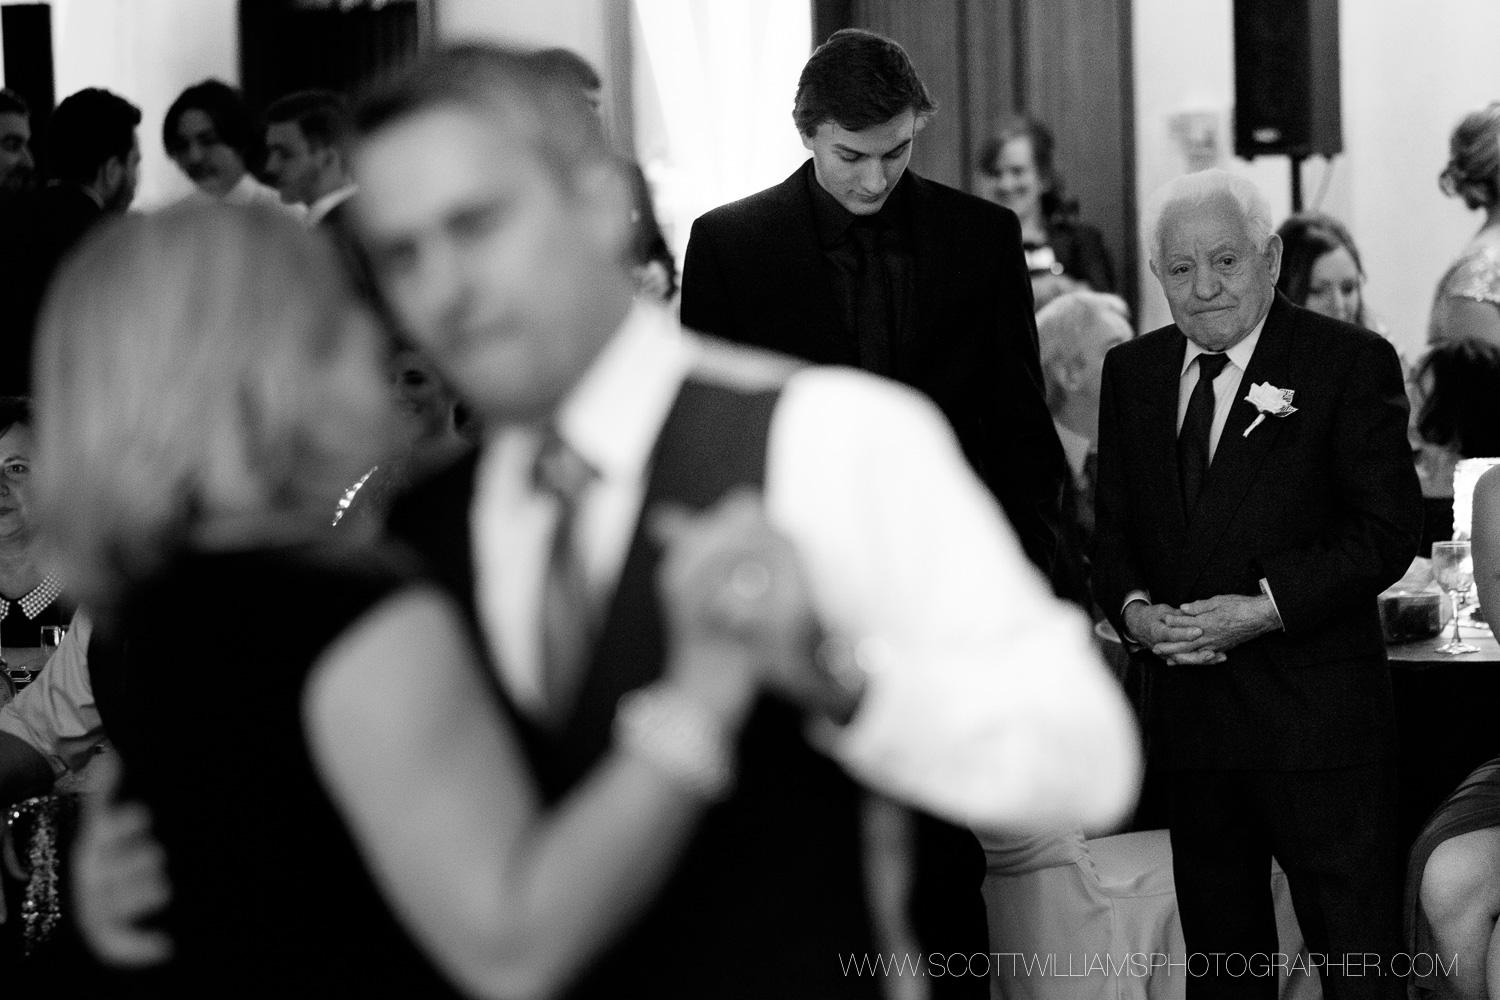 The grooms father looks on as David dances with his sister during their wedding reception in North Bay, Ontario.